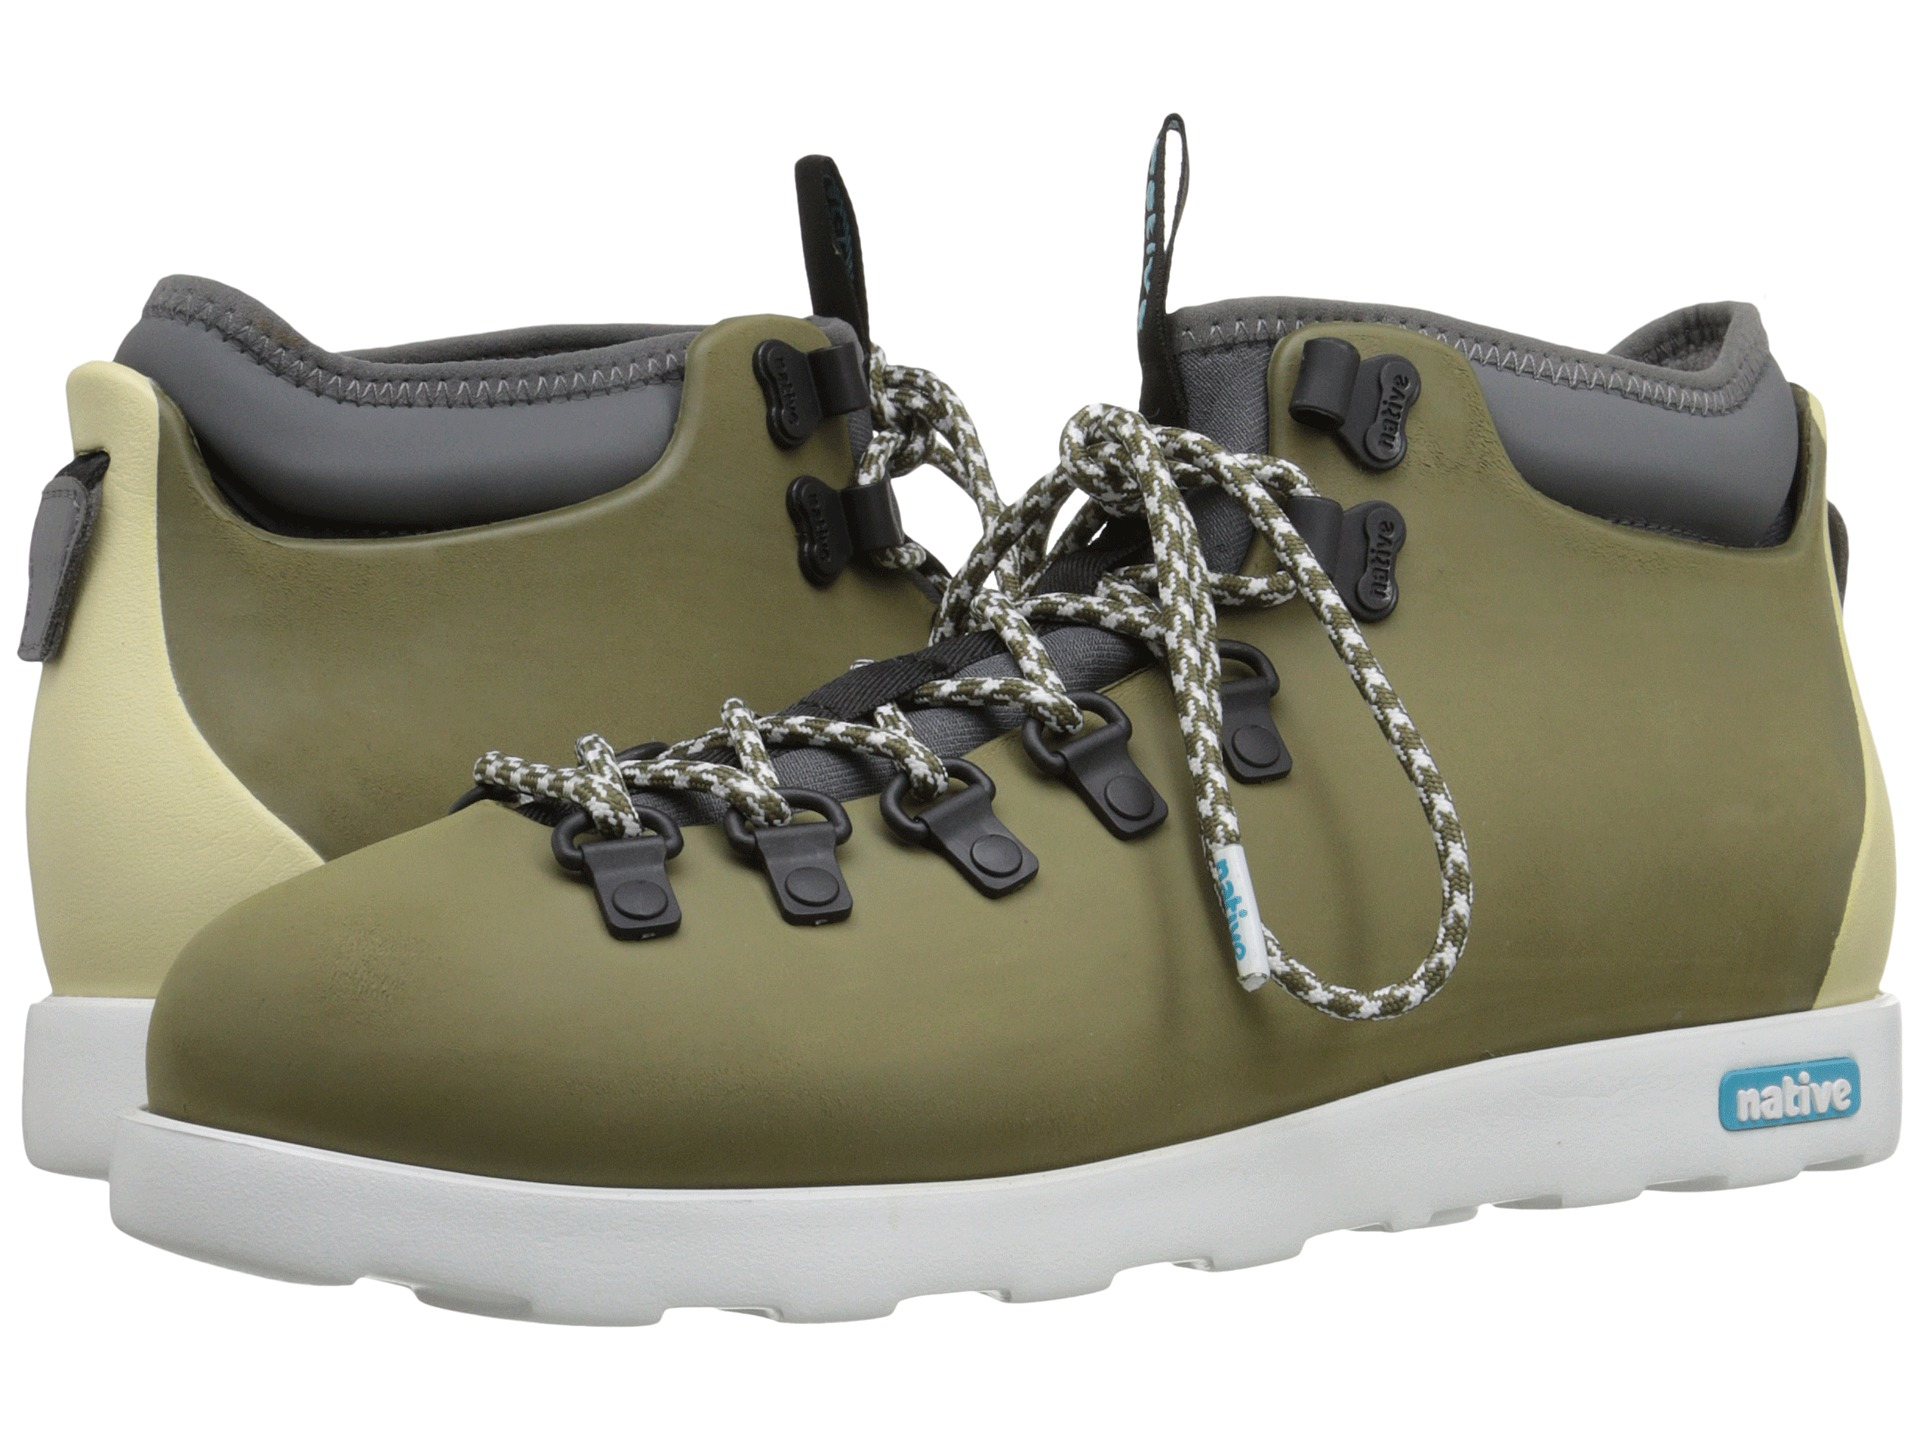 finest selection 1bcd6 00895 ... Lyst - Native Shoes Fitzsimmons in Green for Men ...